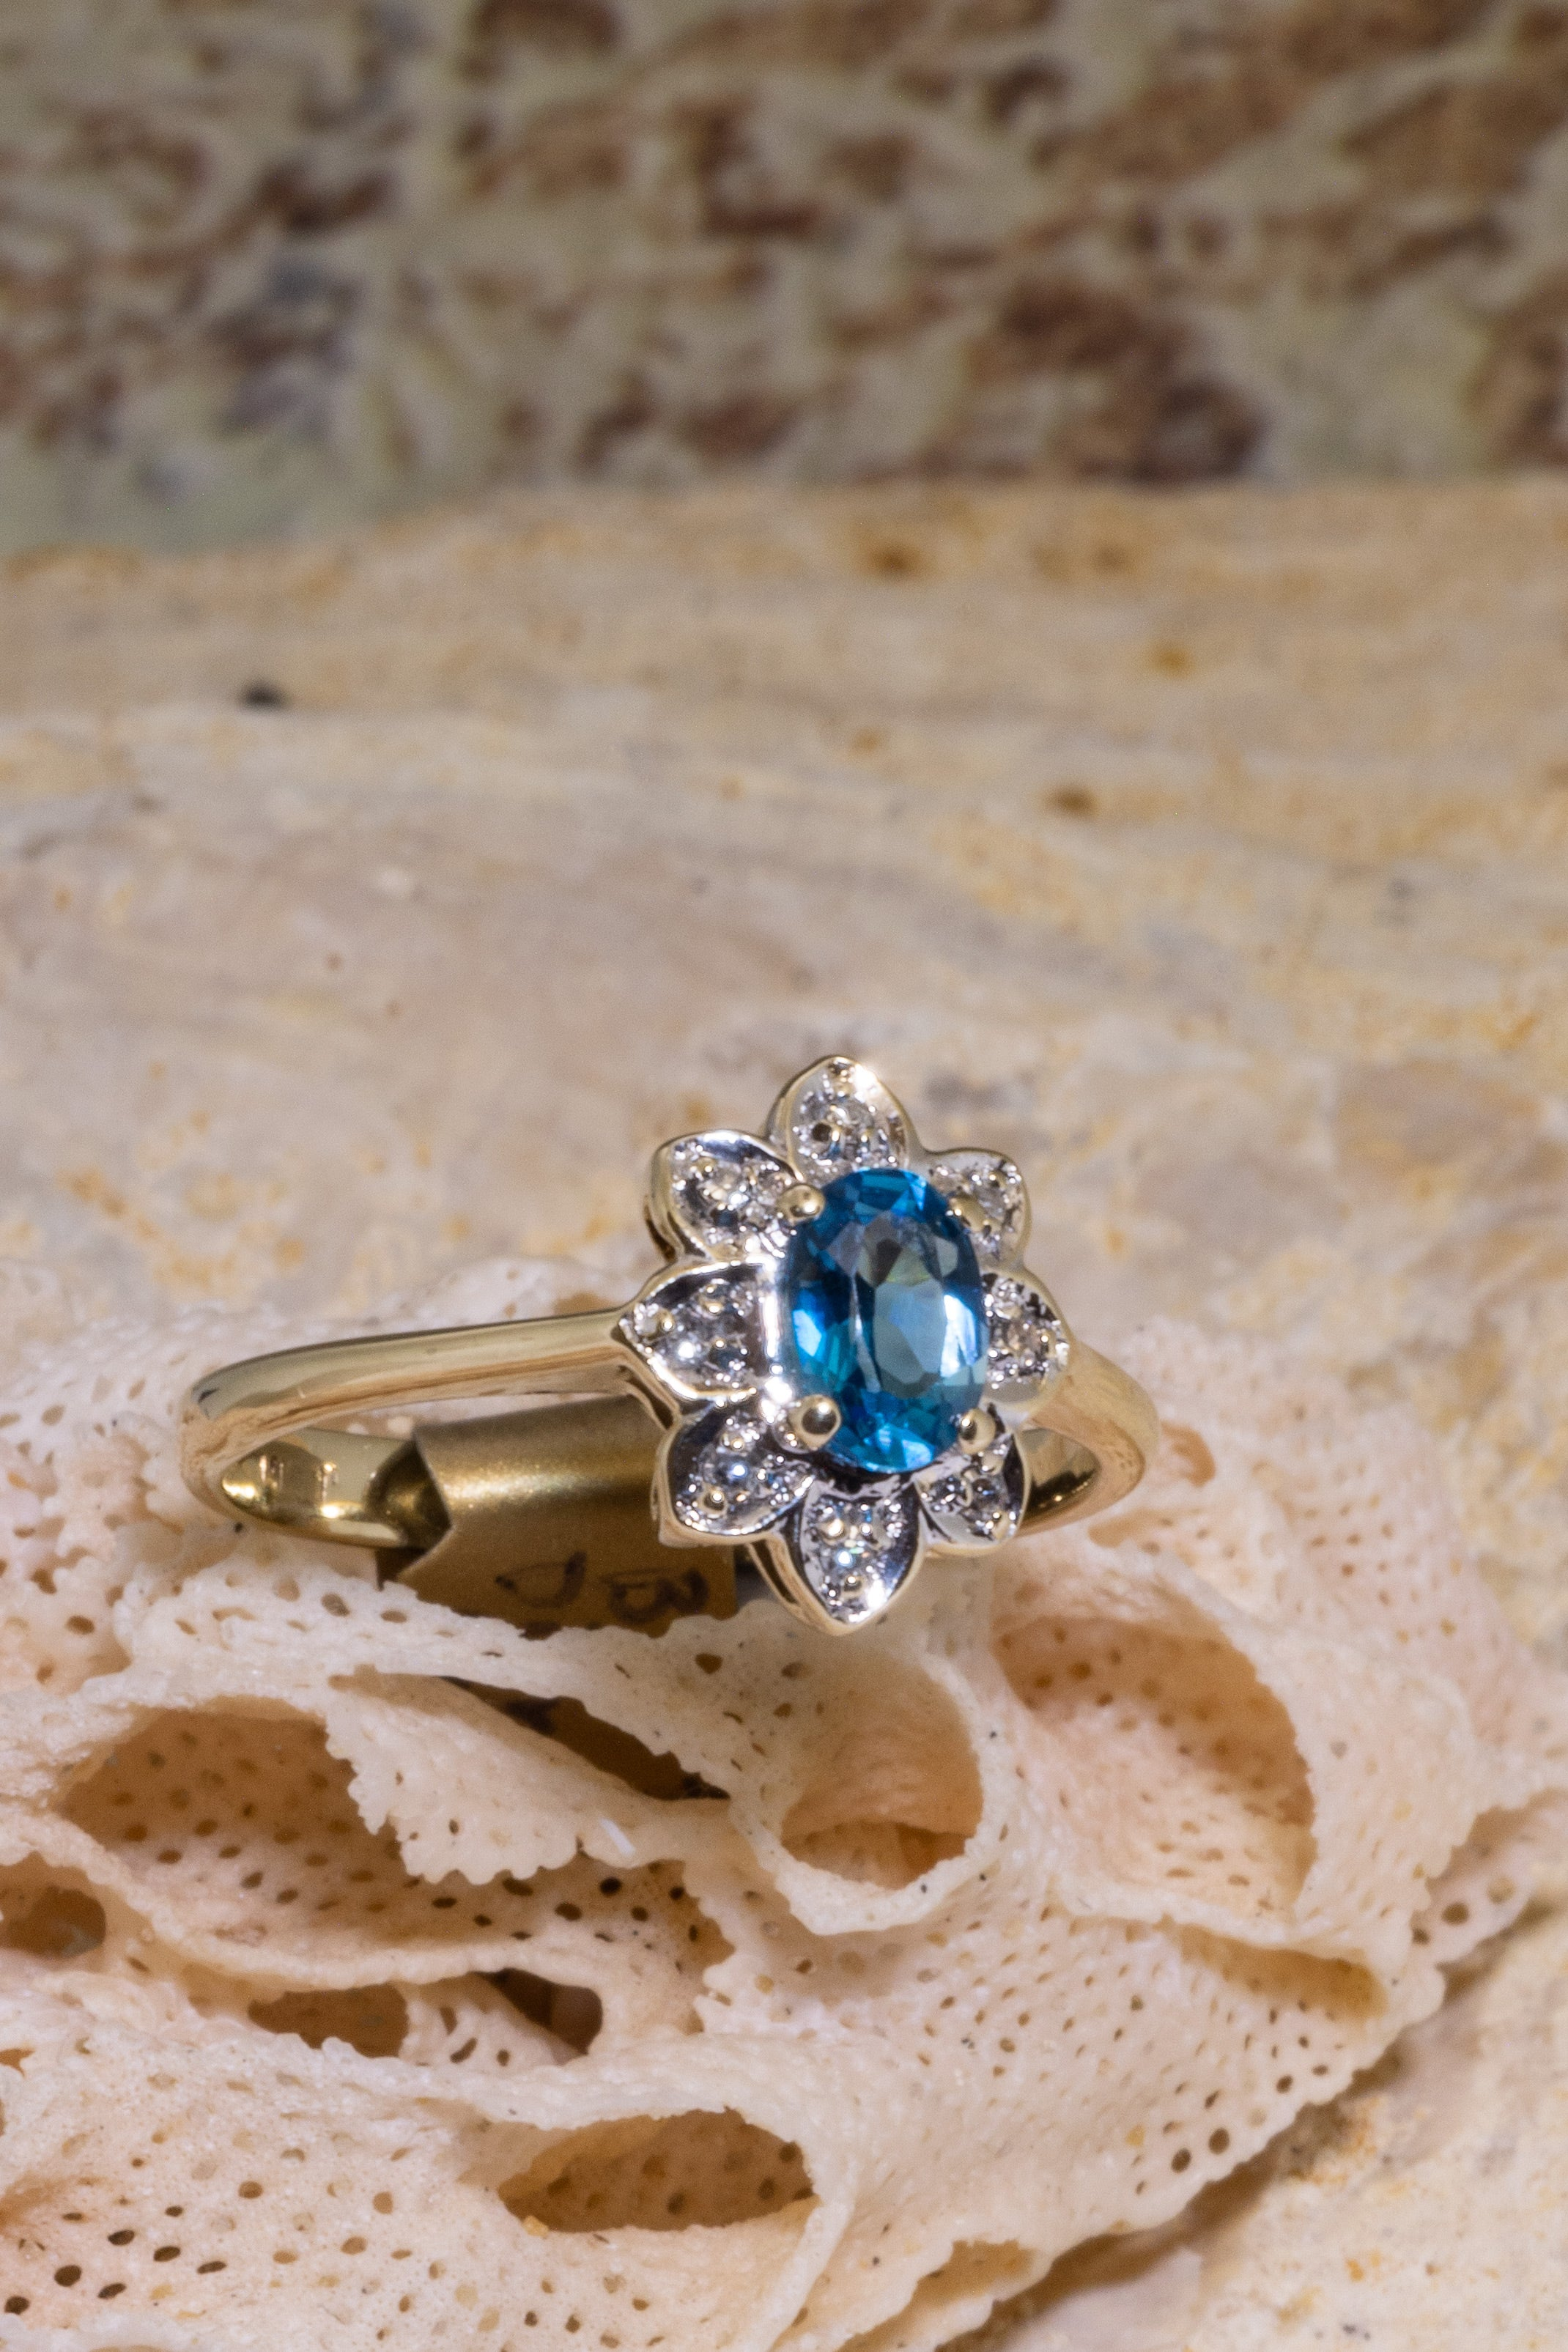 Vintage diamond ring features a faceted London Blue Topaz with 8 diamonds in a fancy halo setting